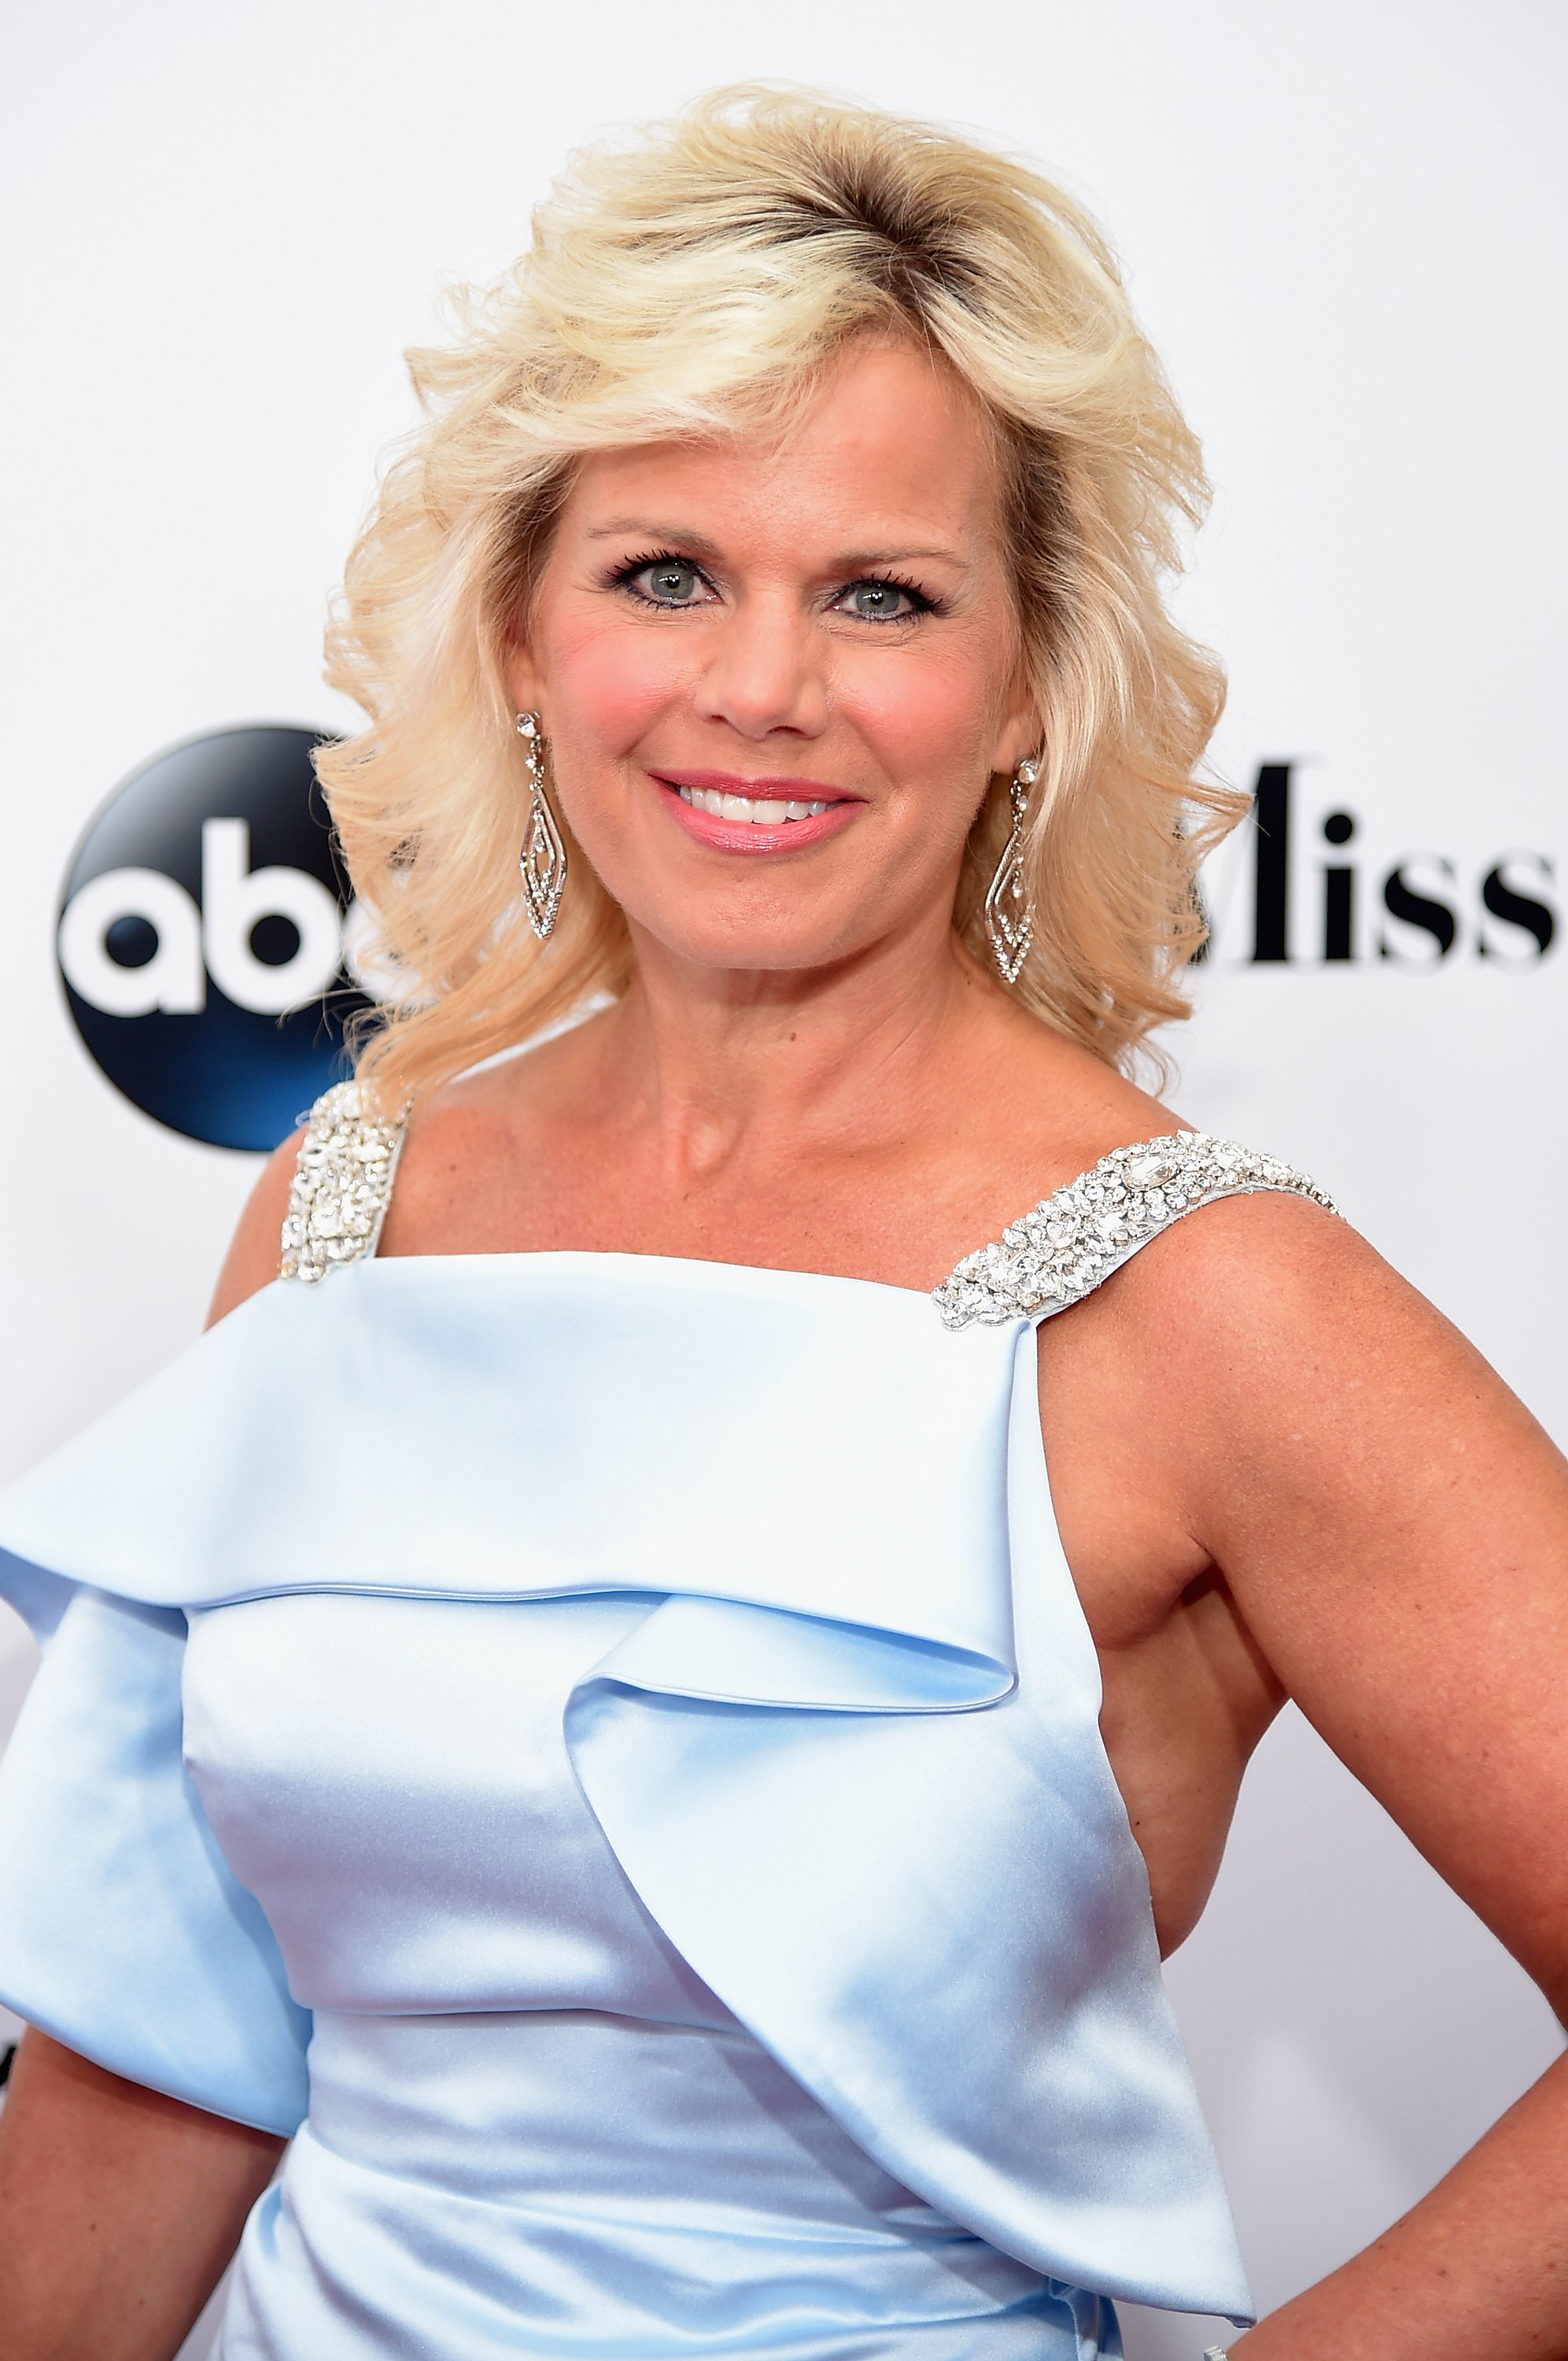 Gretchen Carlson attends the 2016 Miss America Competition at Boardwalk Hall Arena on September 13, 2015 in Atlantic City